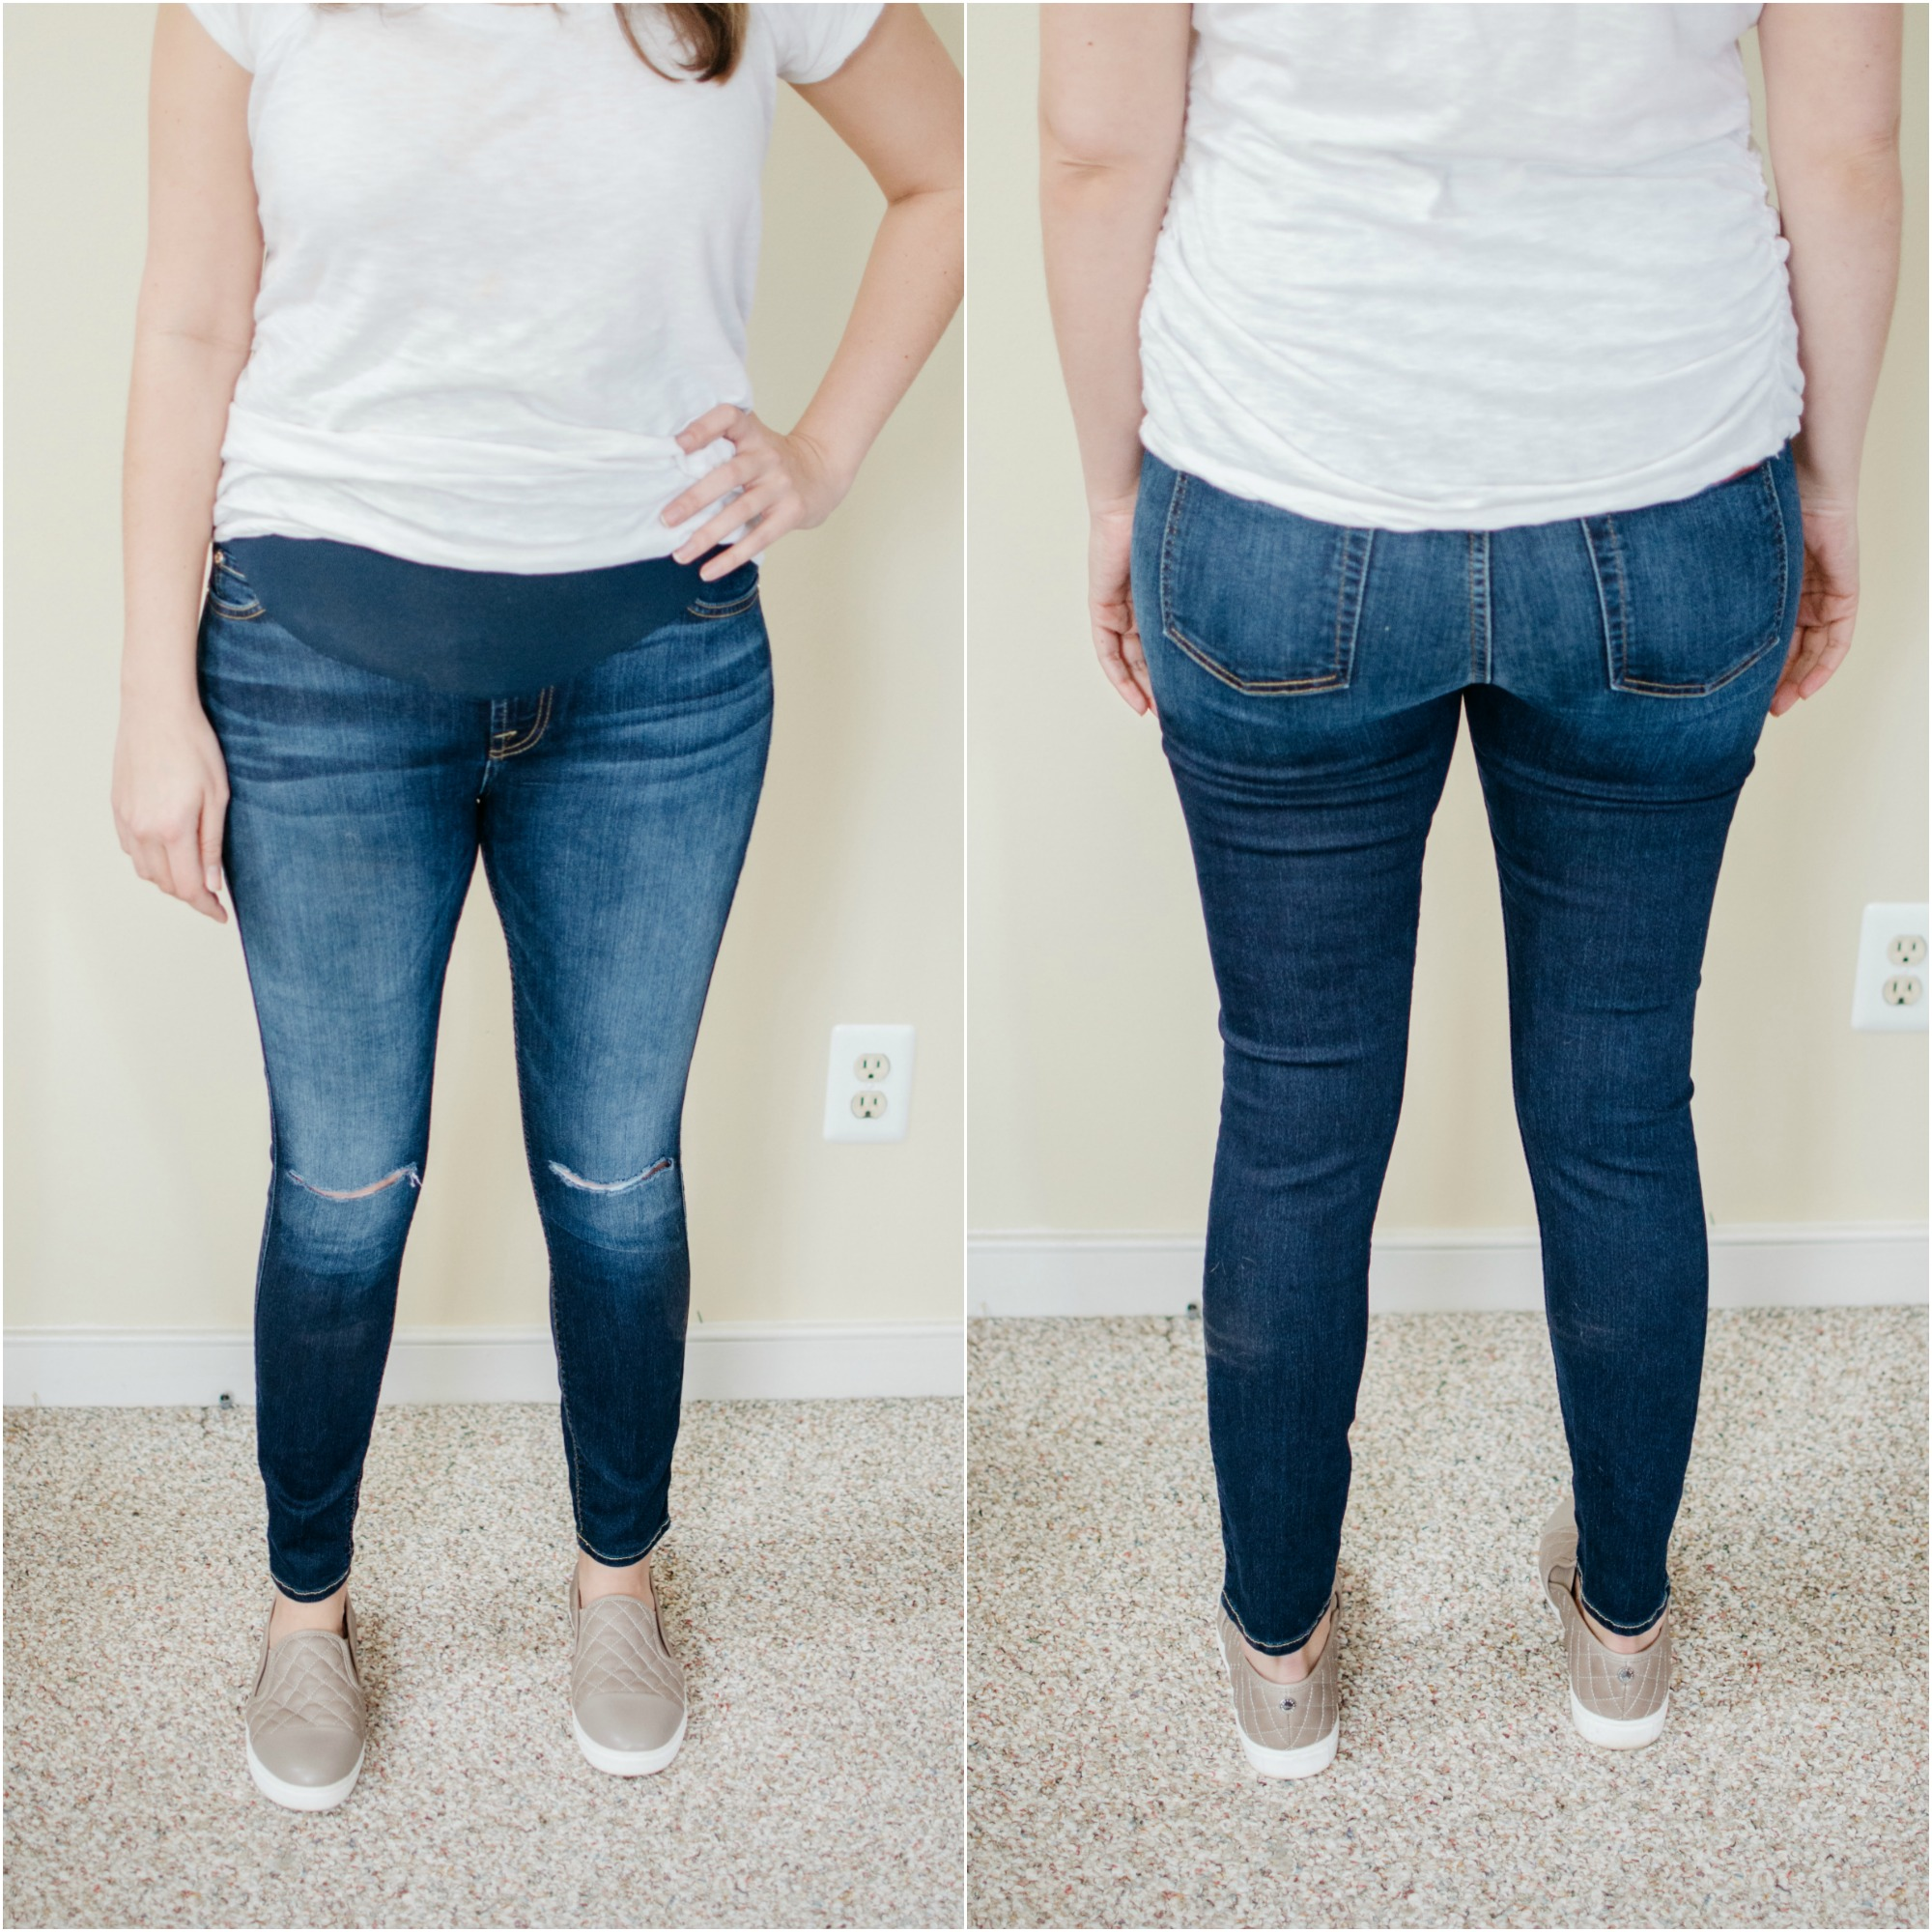 Joes maternity jeans review | See reviews of over 15 maternity jeans brands by clicking through to this post! | bylaurenm.com